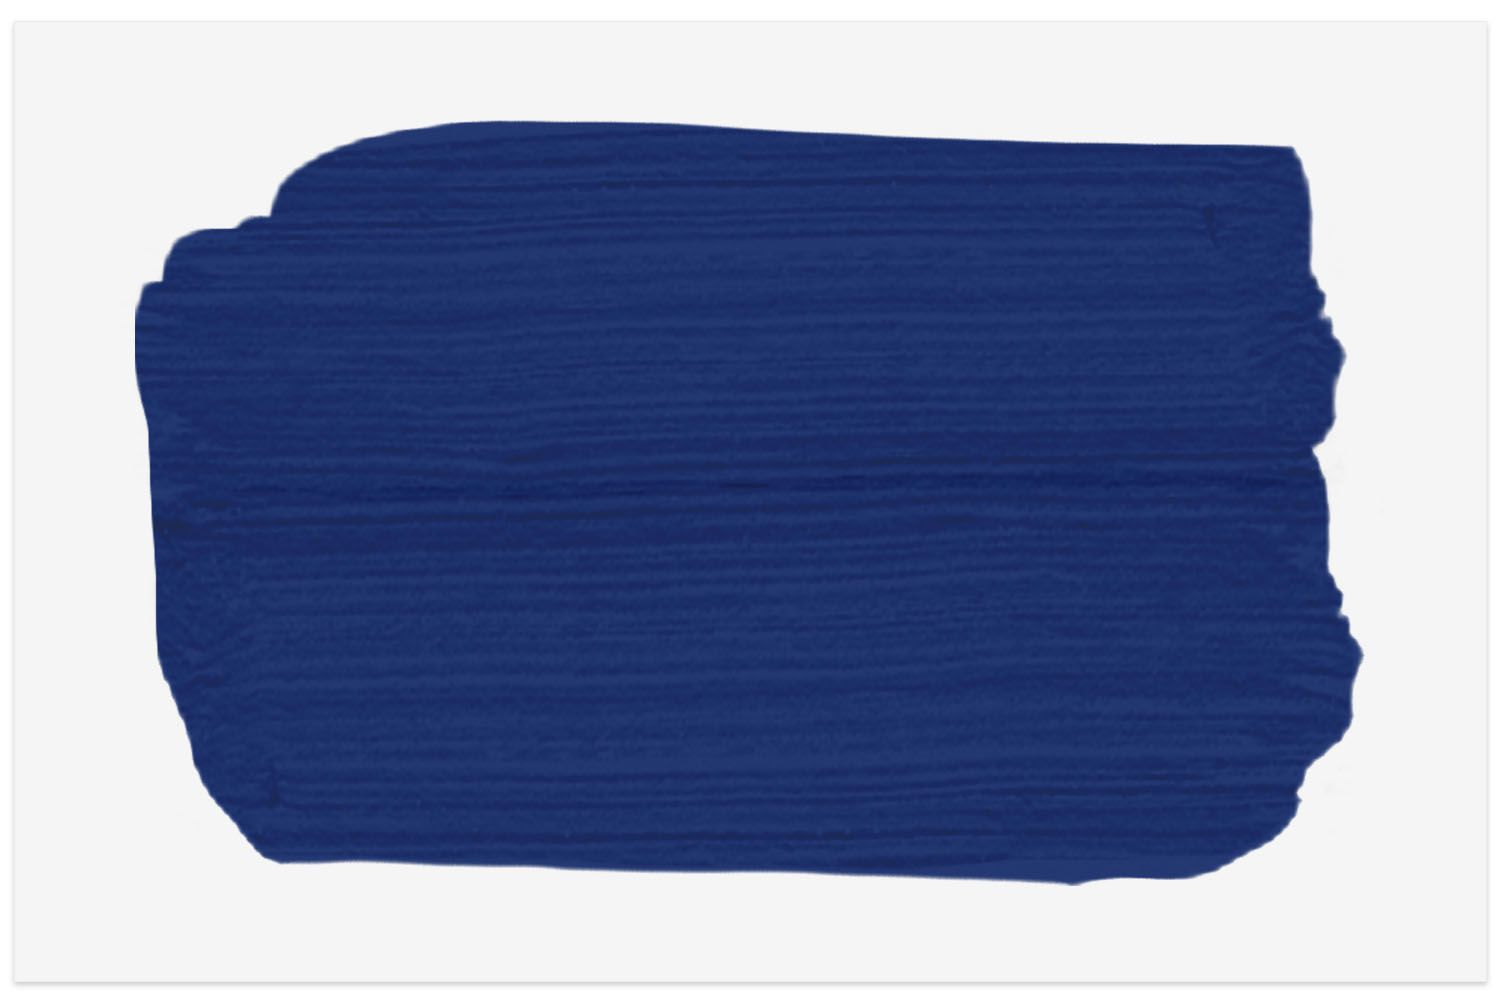 Blue paint swatch from Benjamin Moore